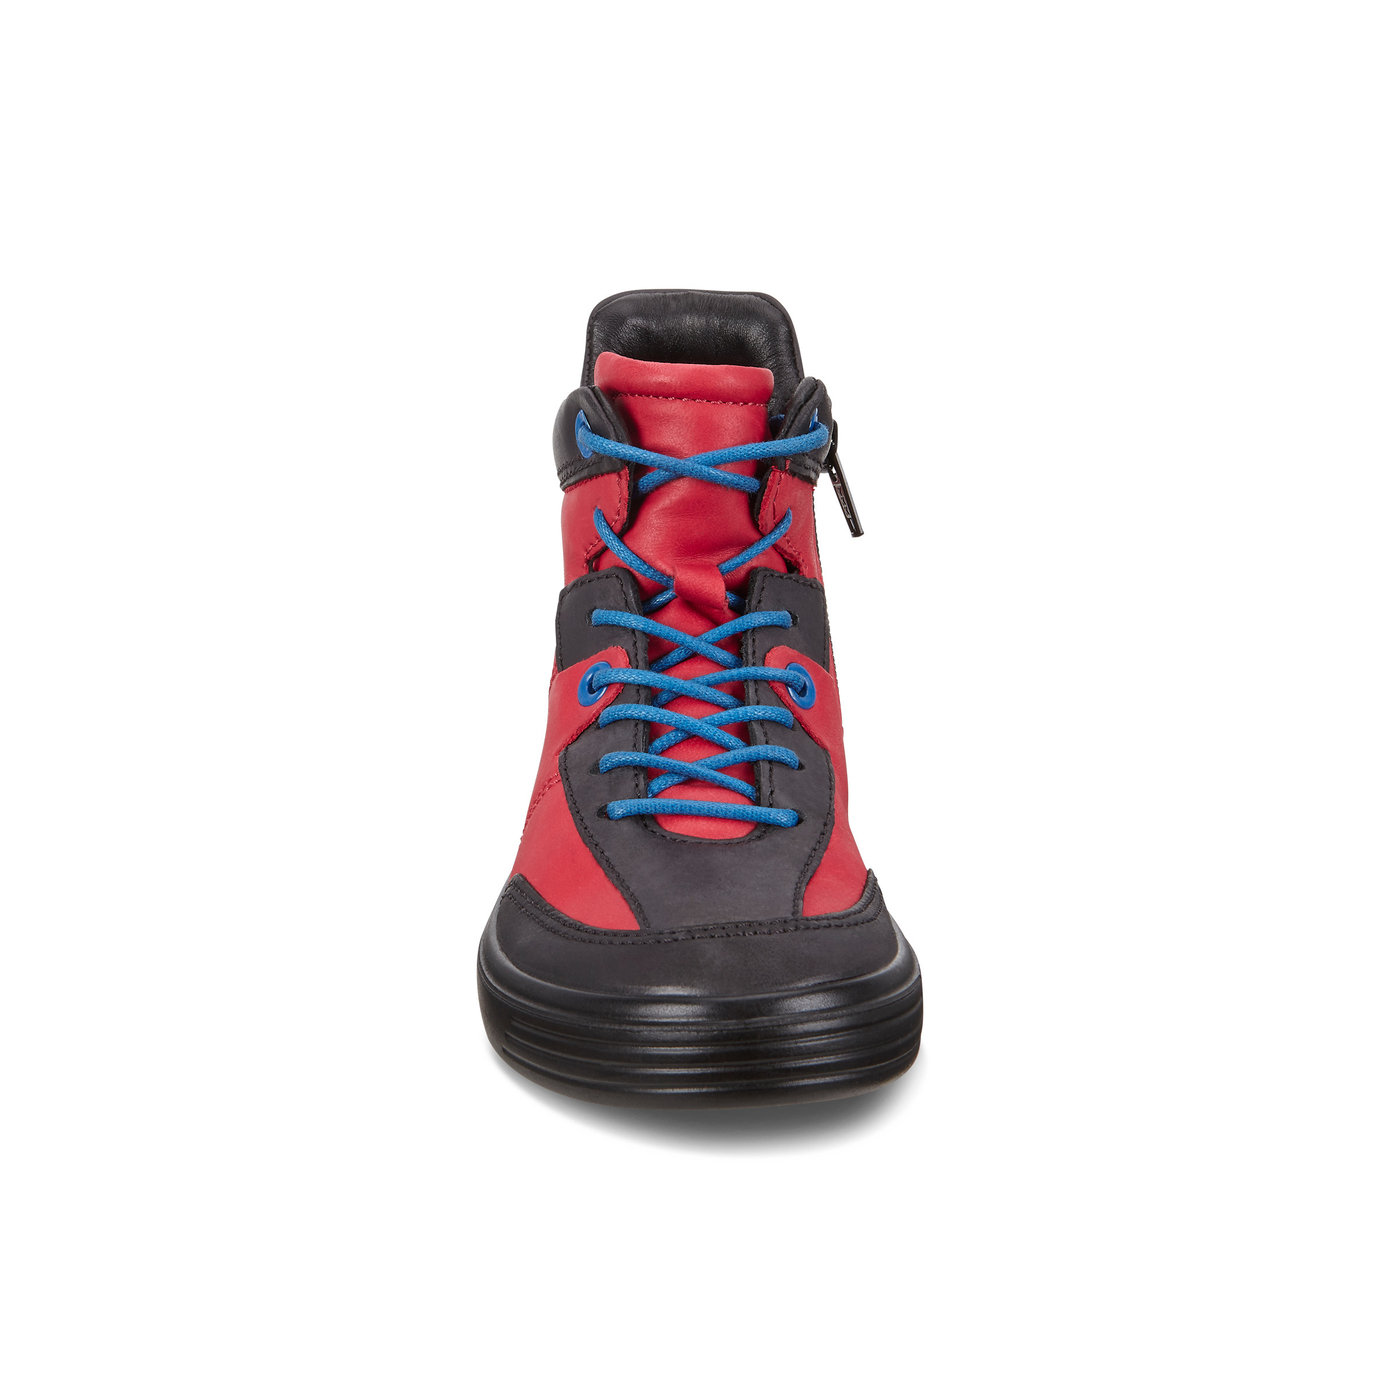 ECCO S7 TEEN Ankle Boot